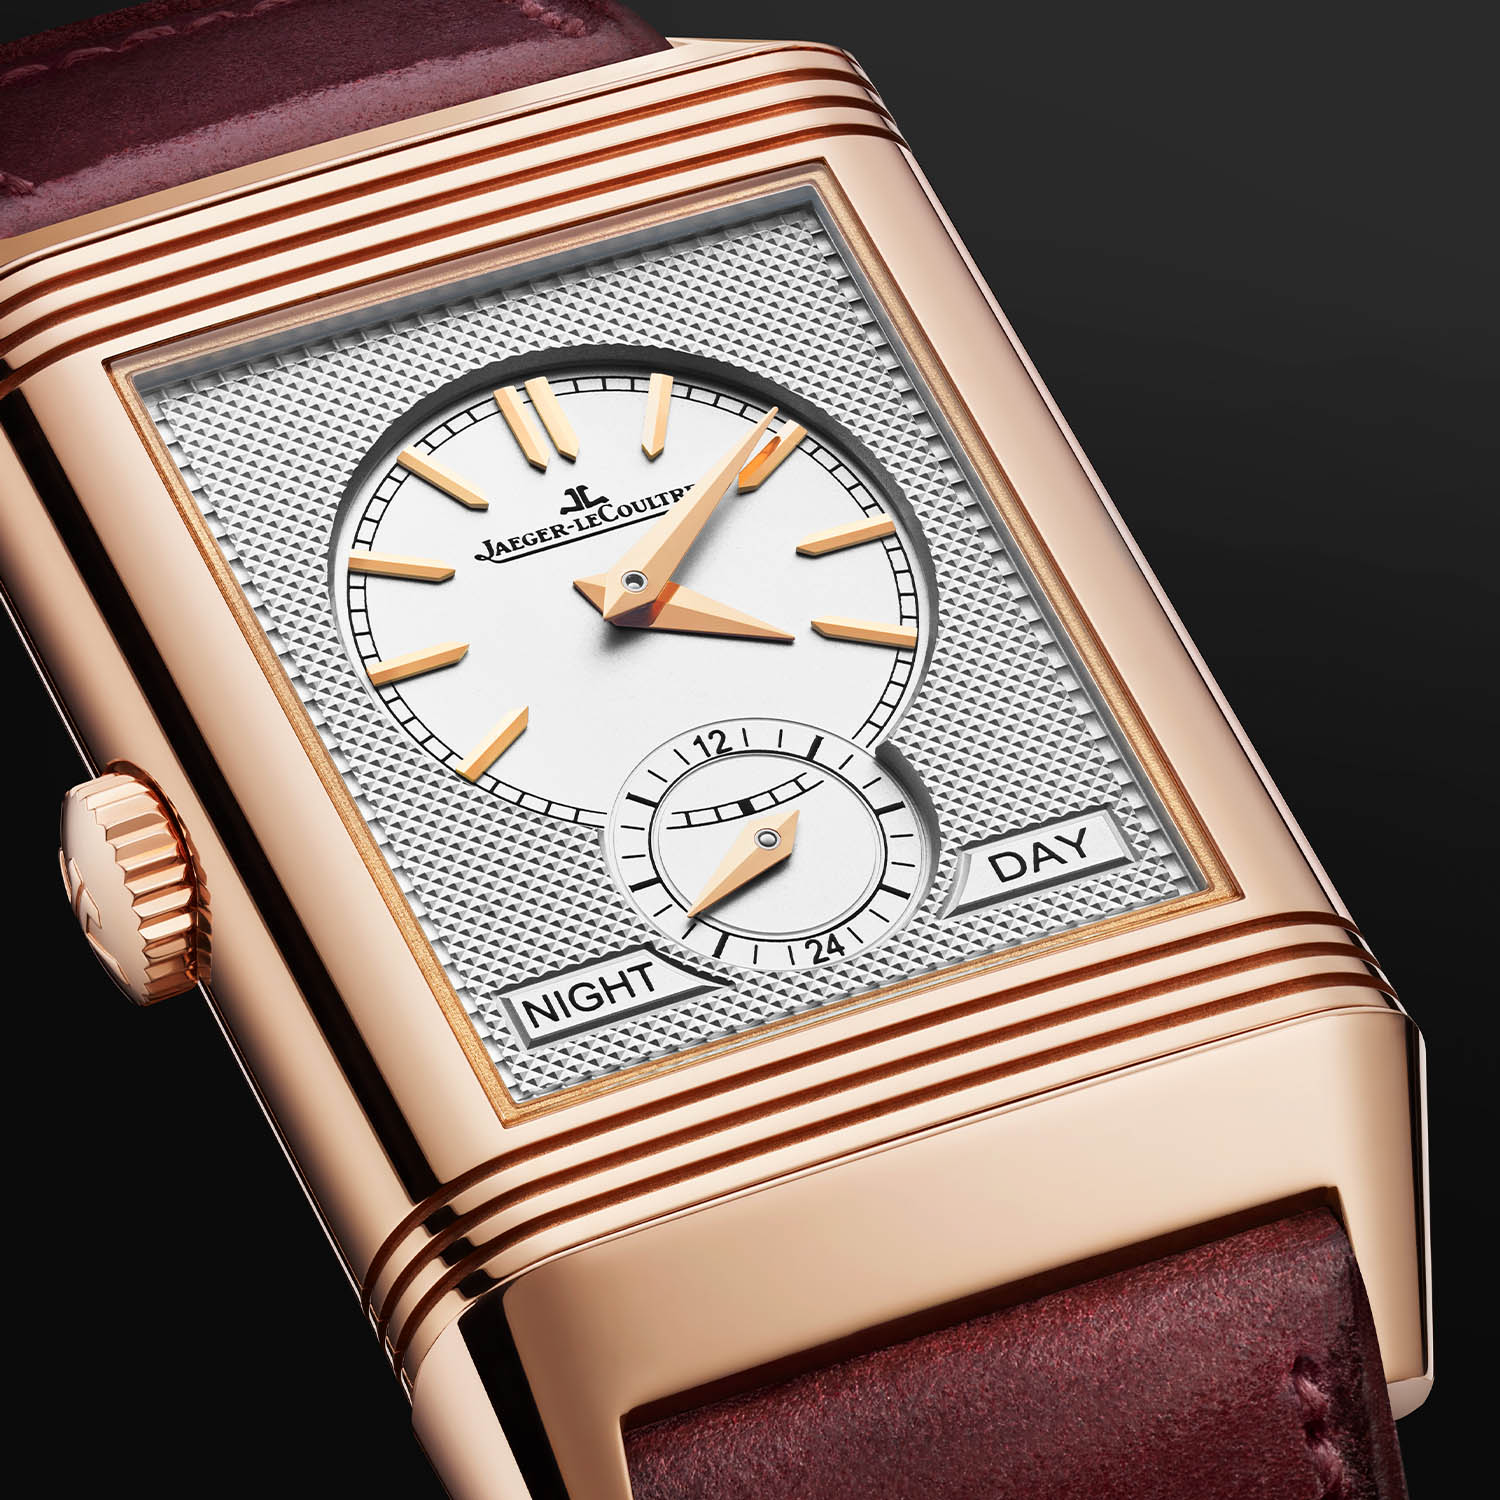 Jaeger LeCoultre Reverso Tribute DuoFace Fagliano Burgundy Limited 12